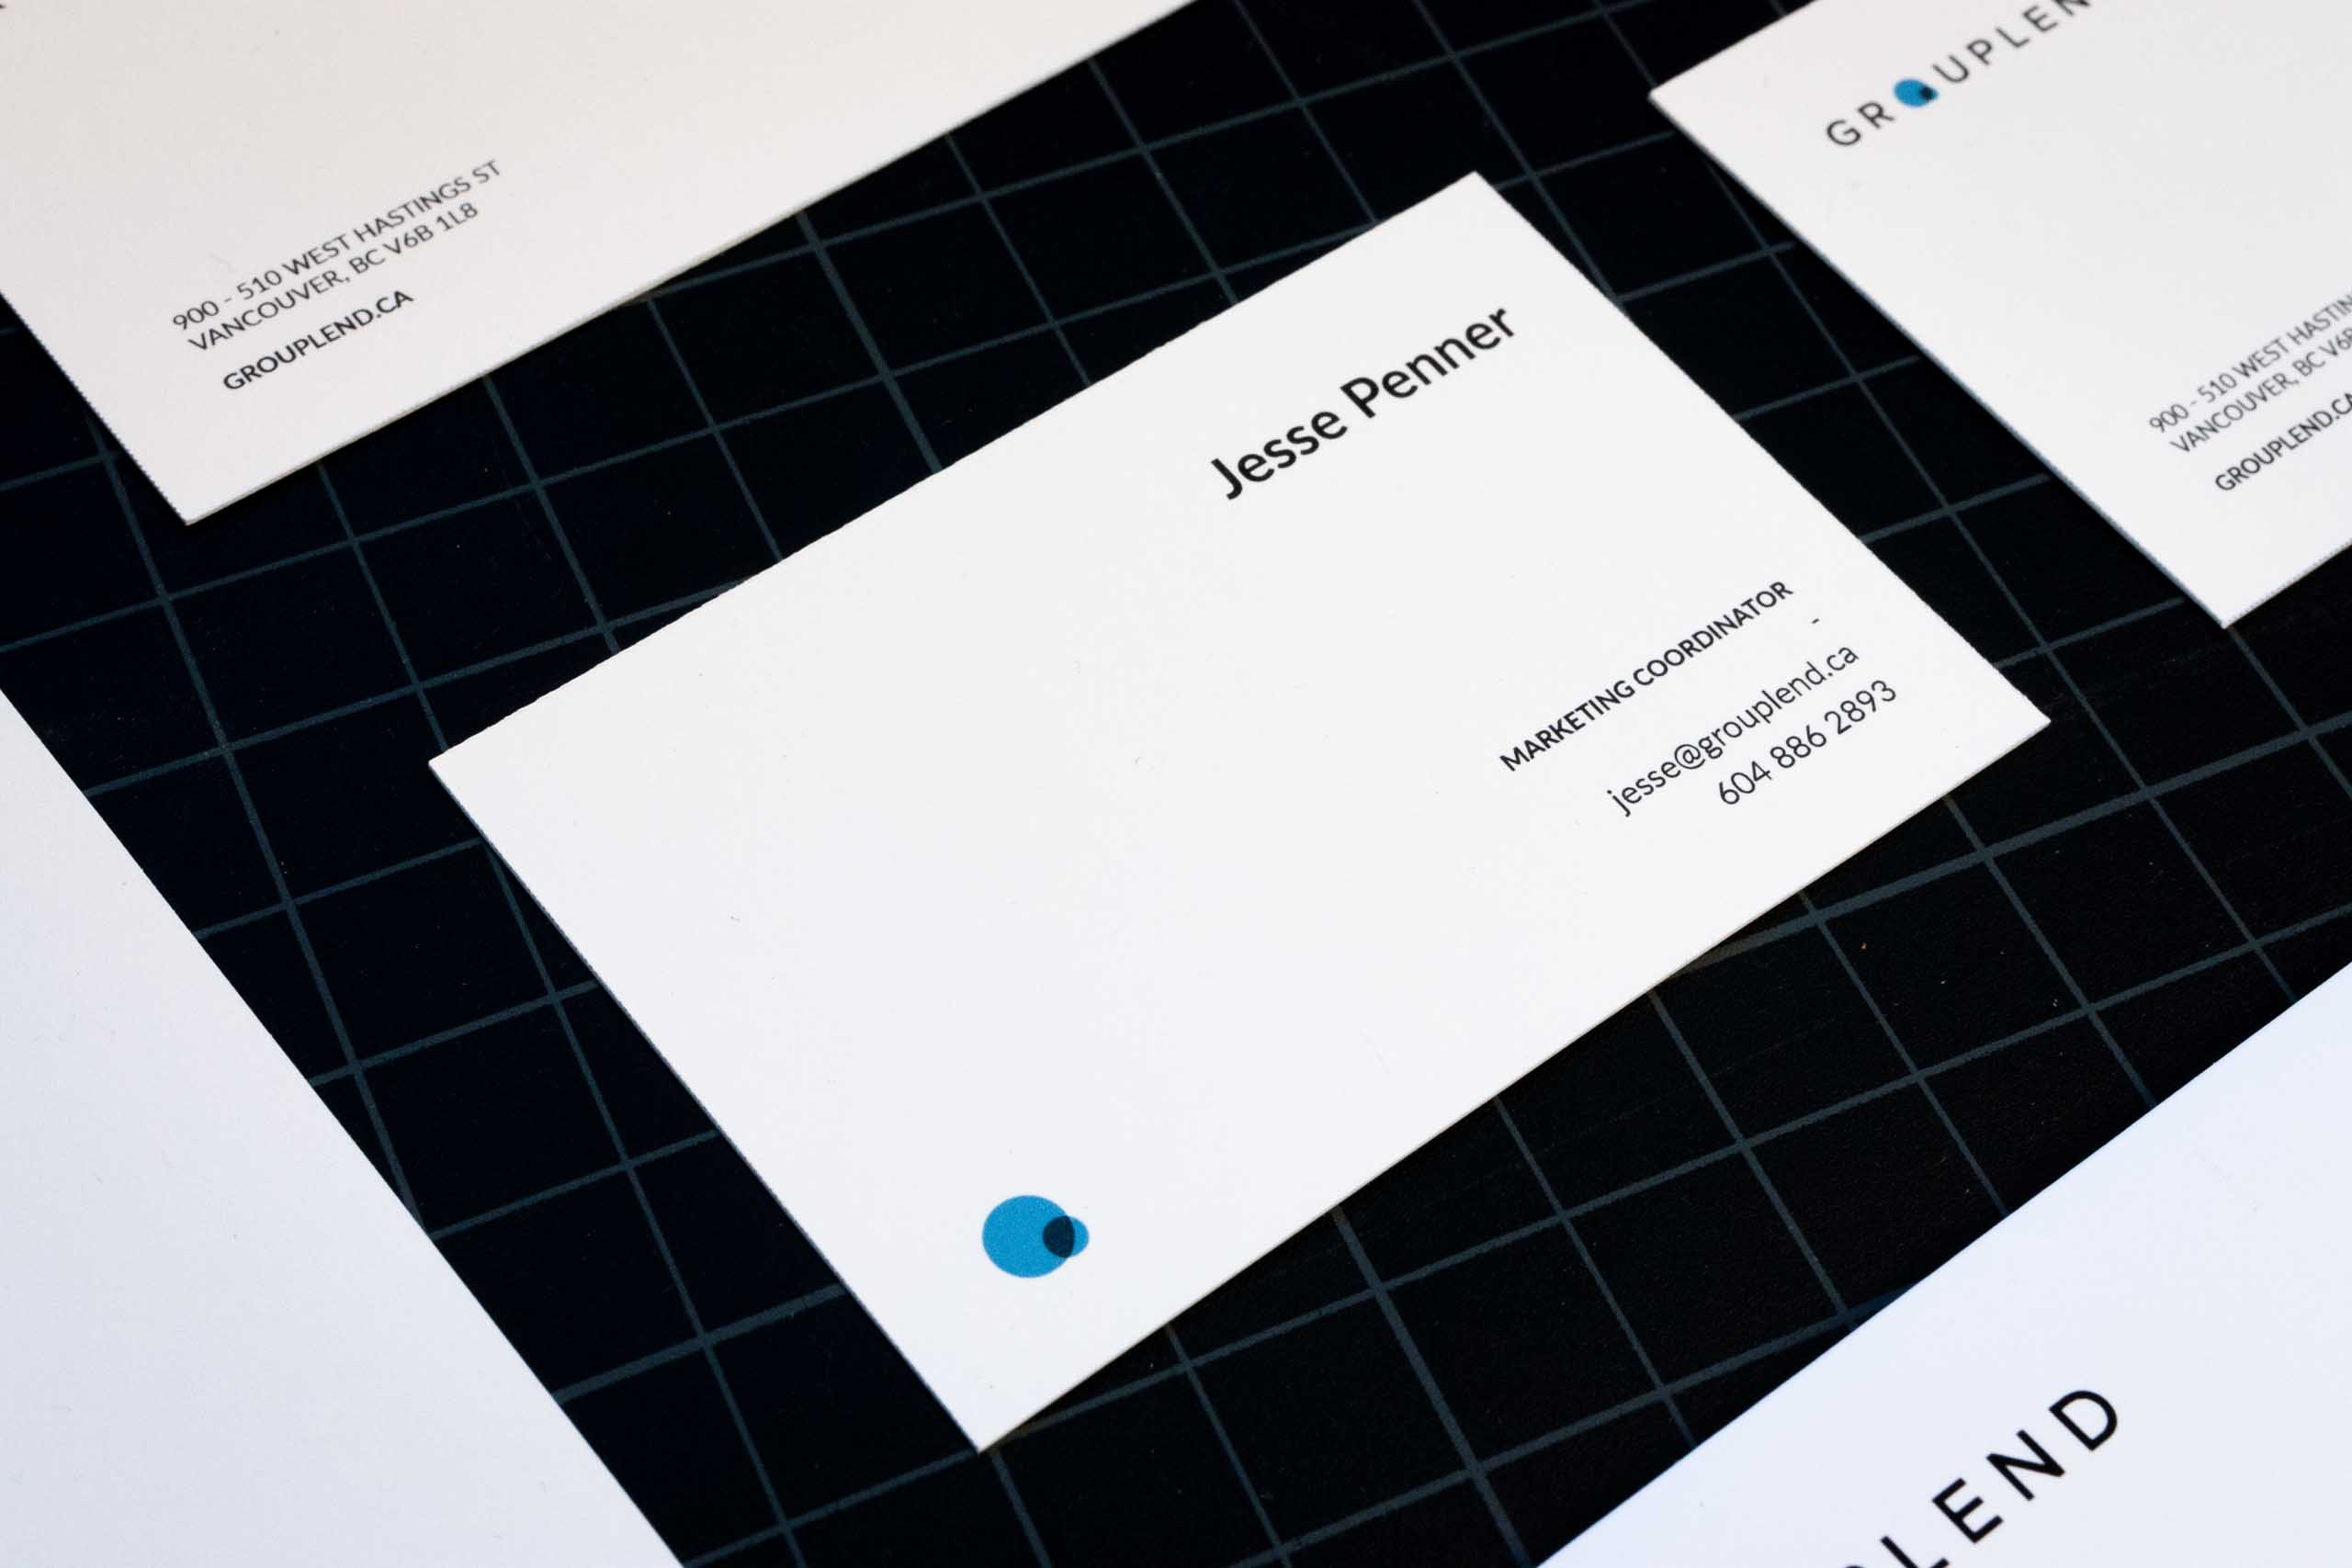 Grouplend business card individual side showing information for Marketing Coordinator — by Yagnyuk.